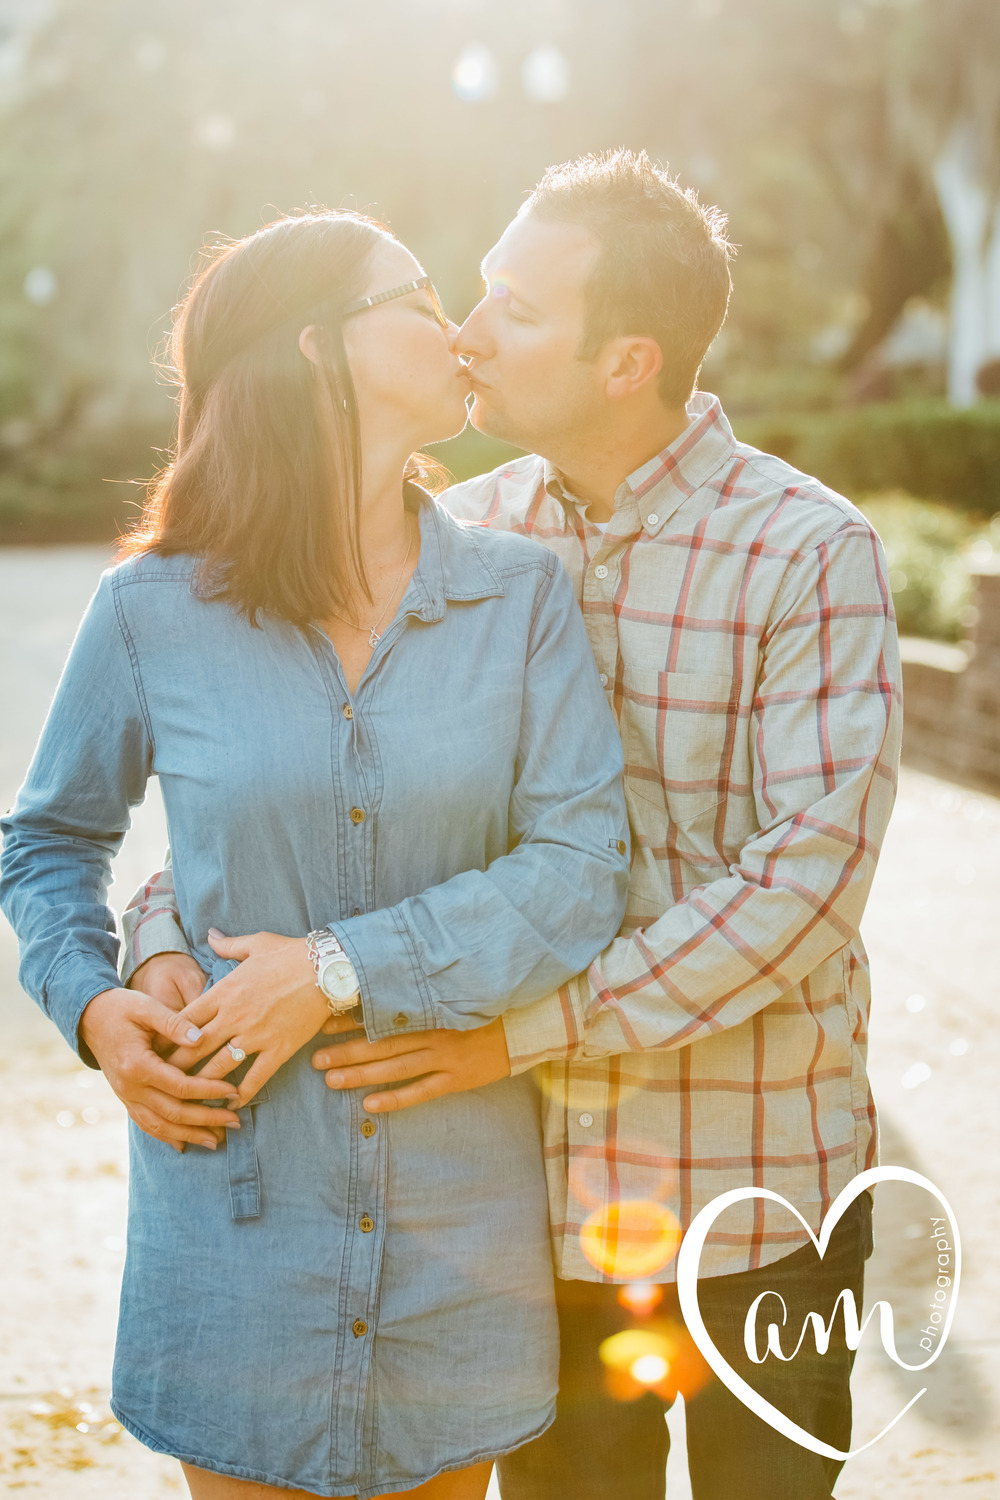 Sunny Orlando engagement photos. Church Street engagement session. Photo by Amanda Mejias Photography: Orlando wedding photographer.